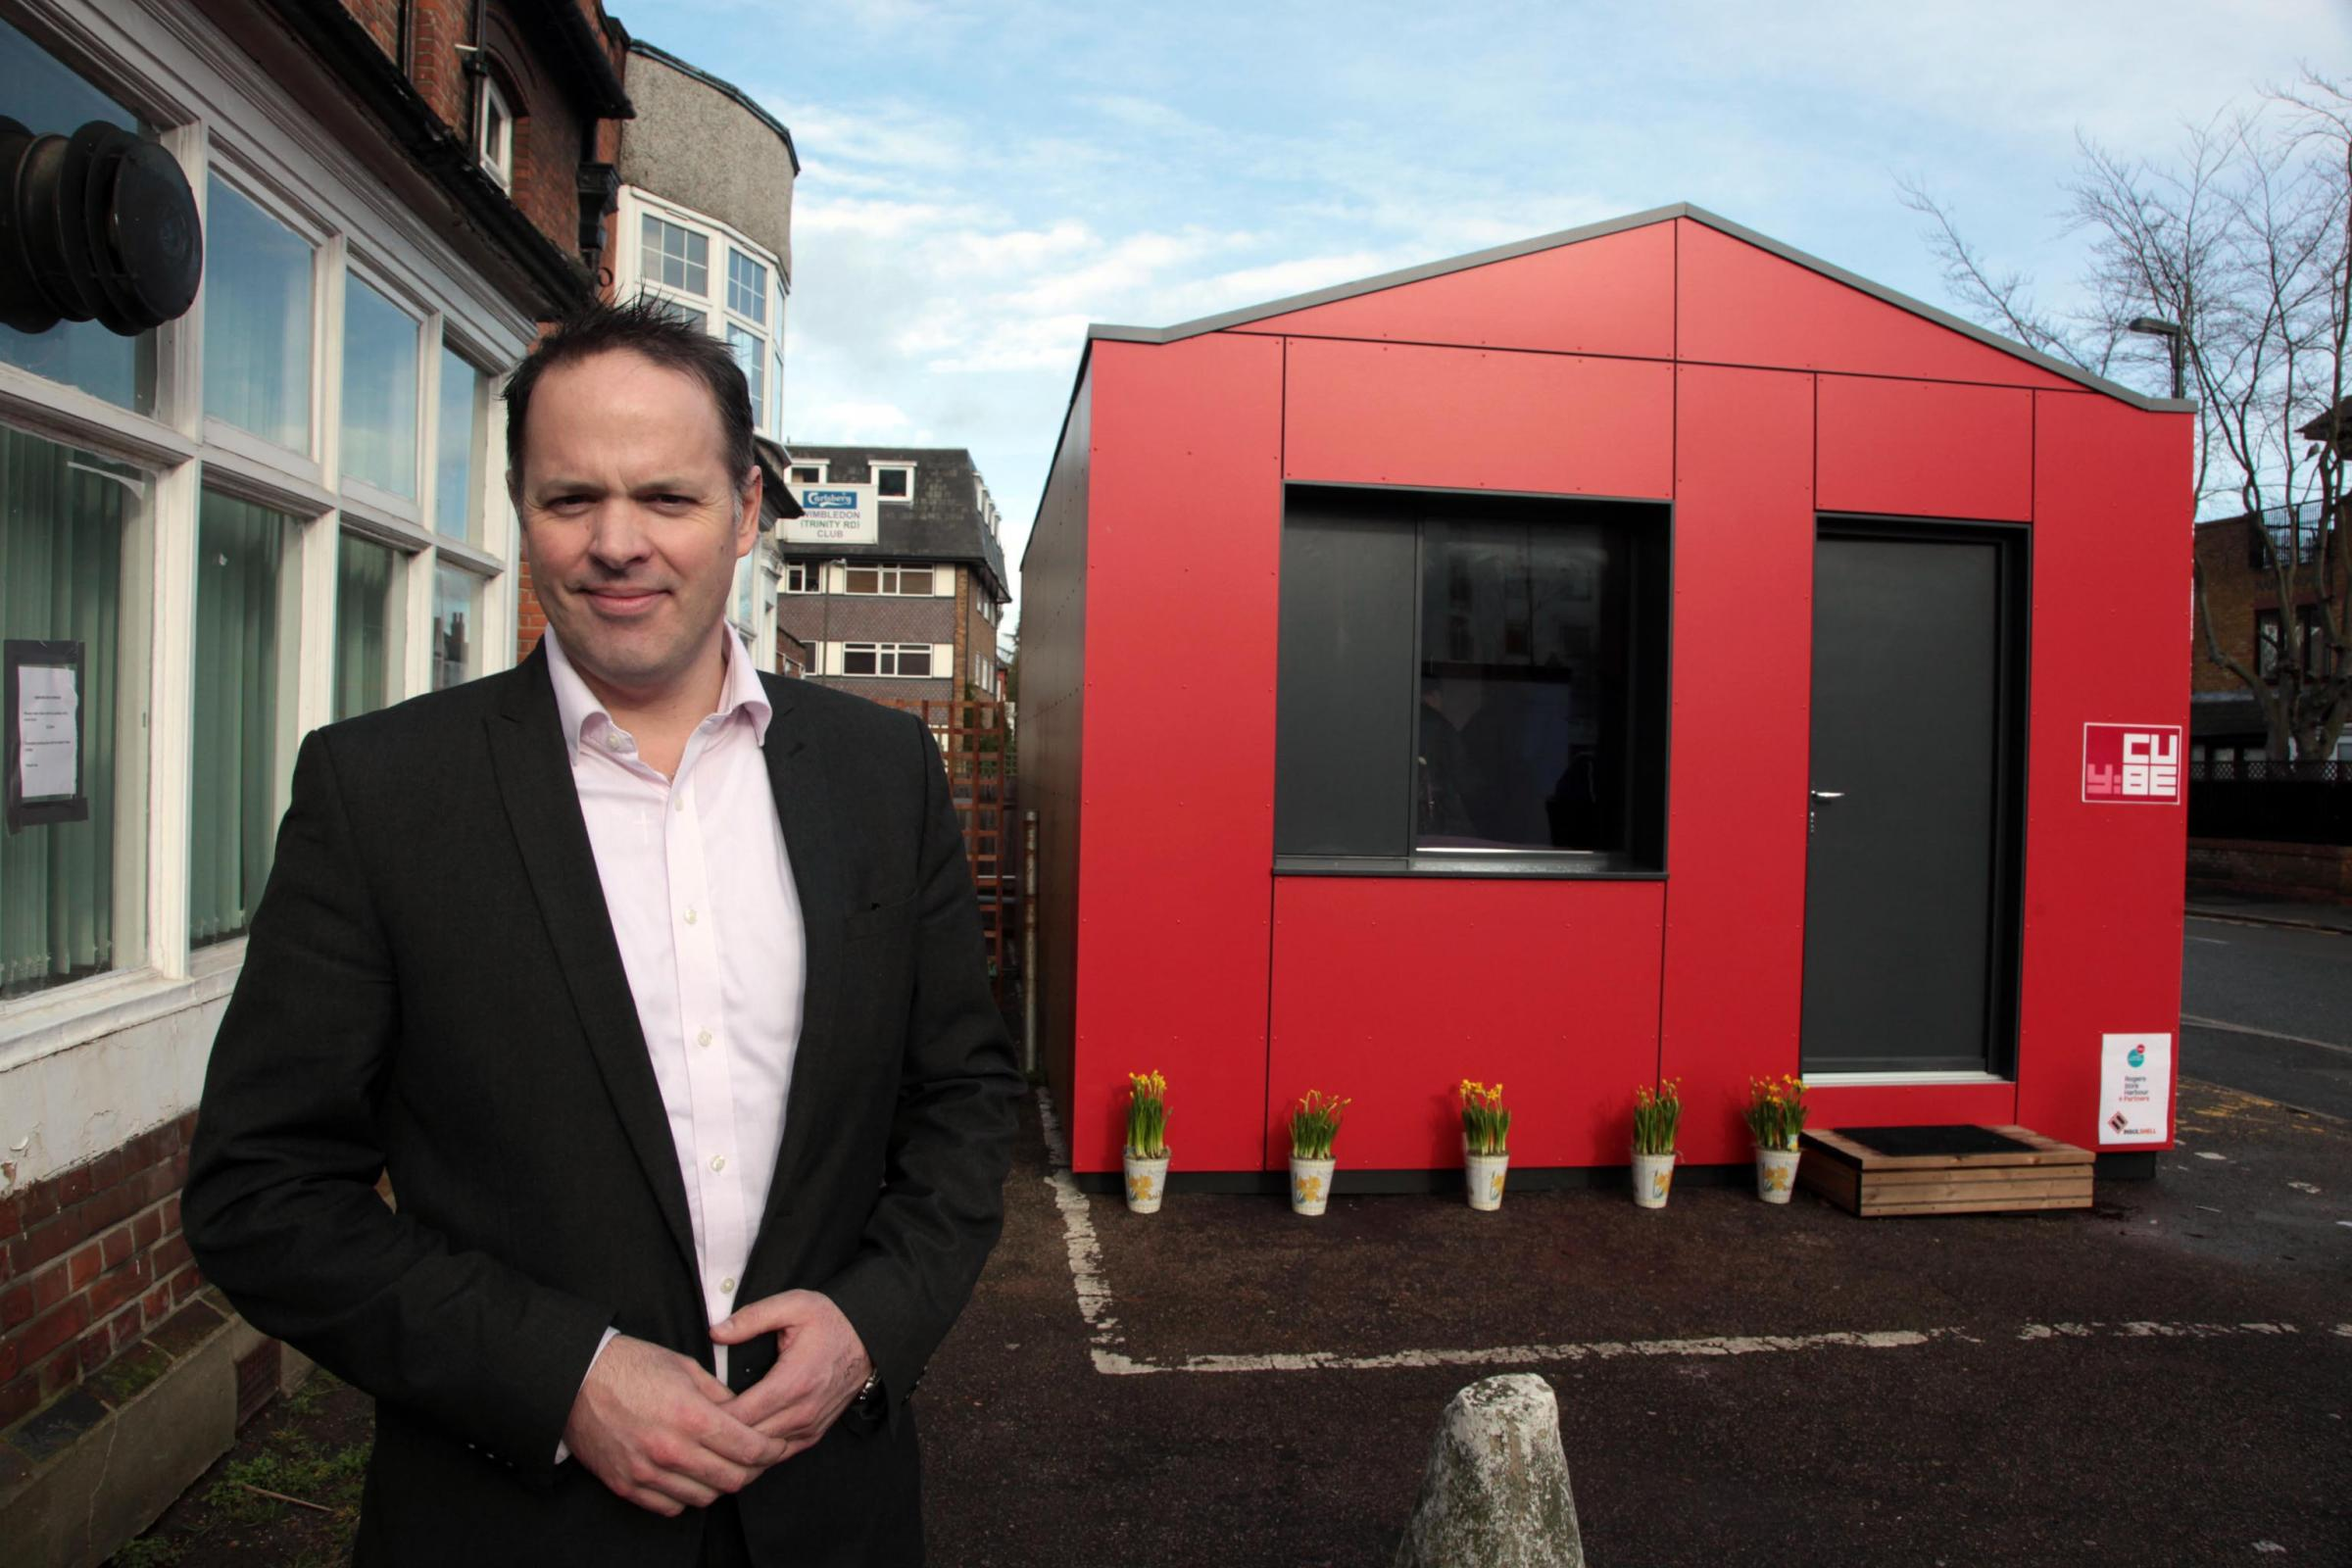 Could 'shipping container' homes on Tesco Tolworth site ease housing demand crisis?